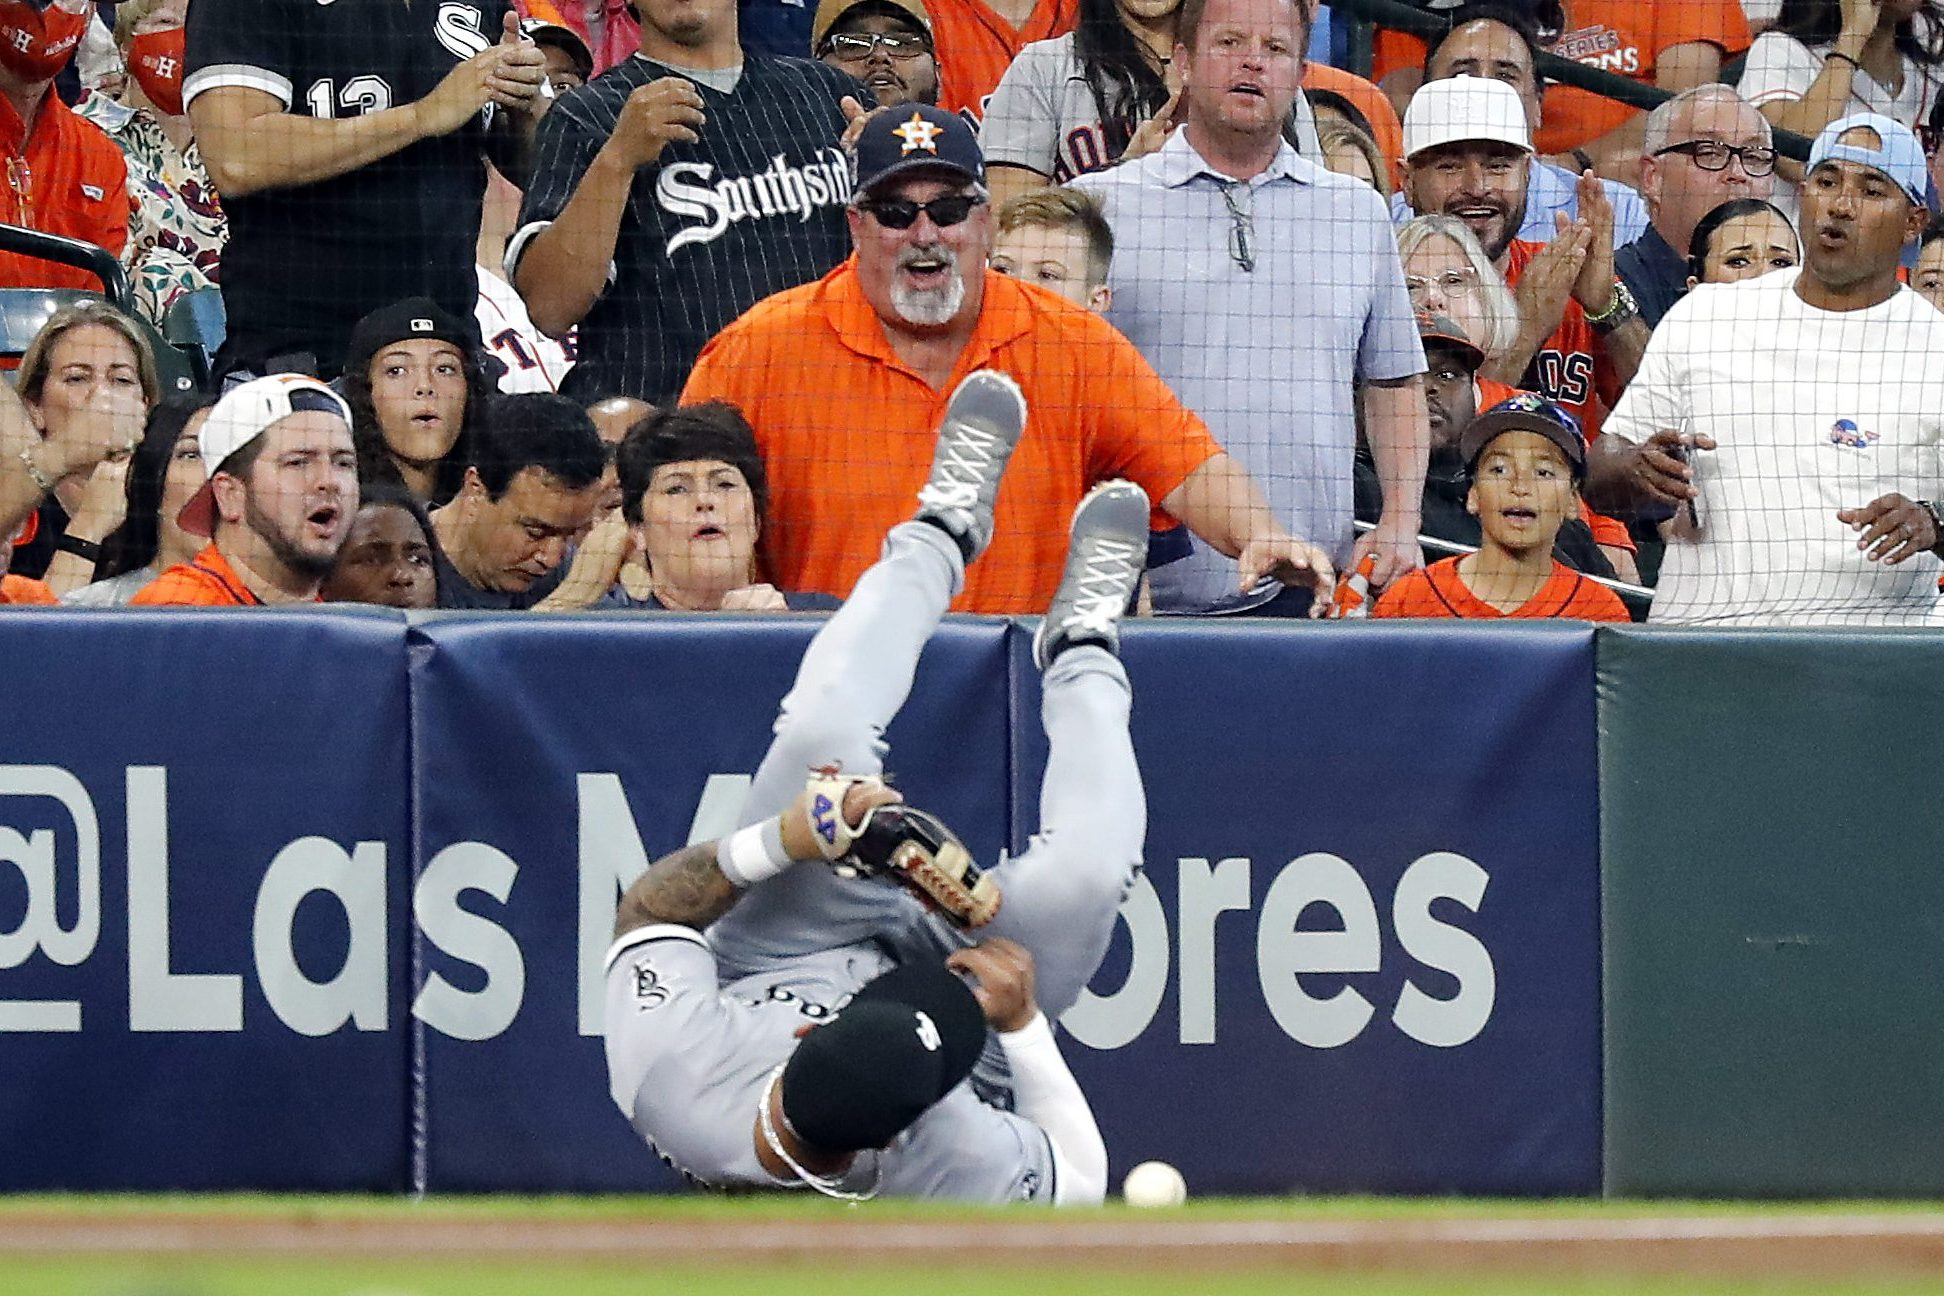 Yoan Moncada of the Chicago White Sox sprawled on the ground in front of jeering Houston Astros fans